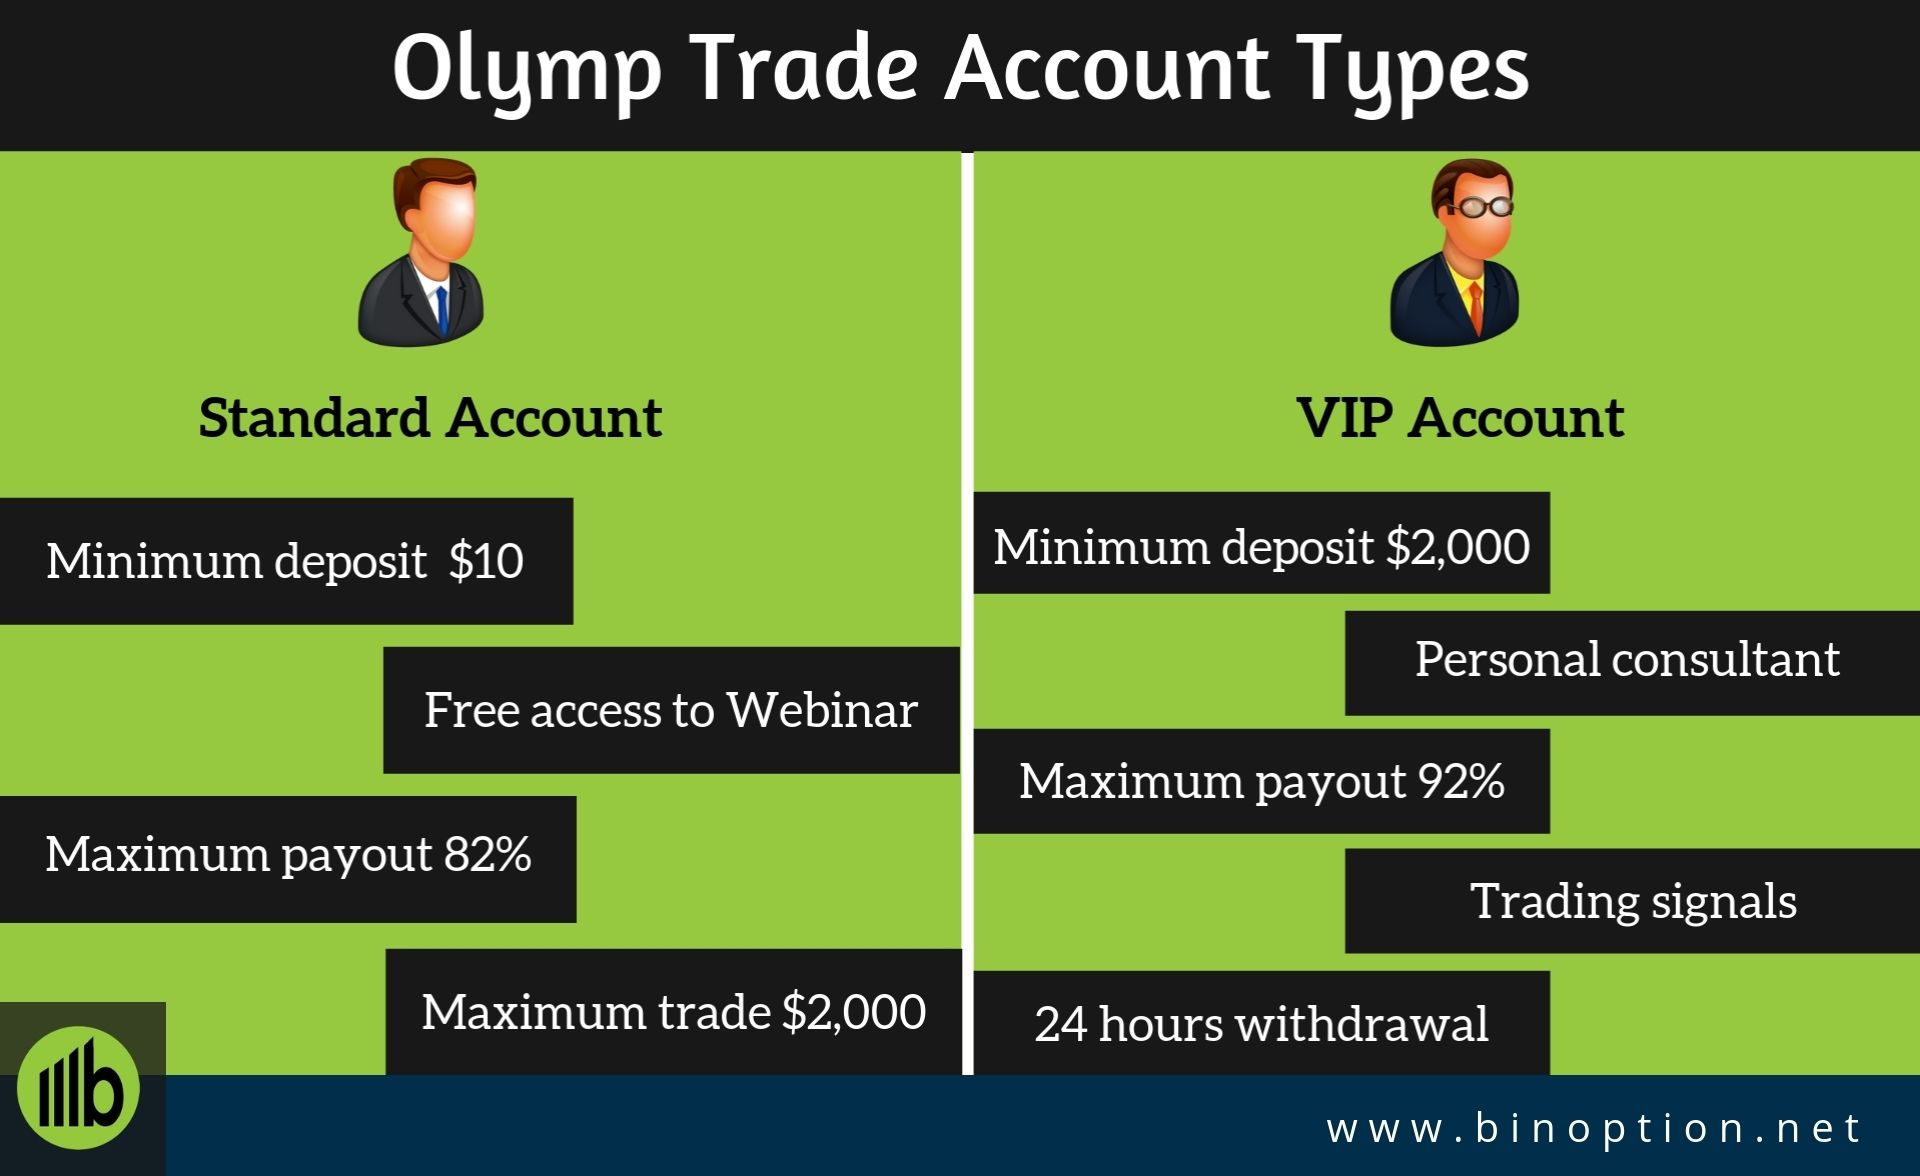 Olymp Trade Online Trading Trading Brokers Accounting